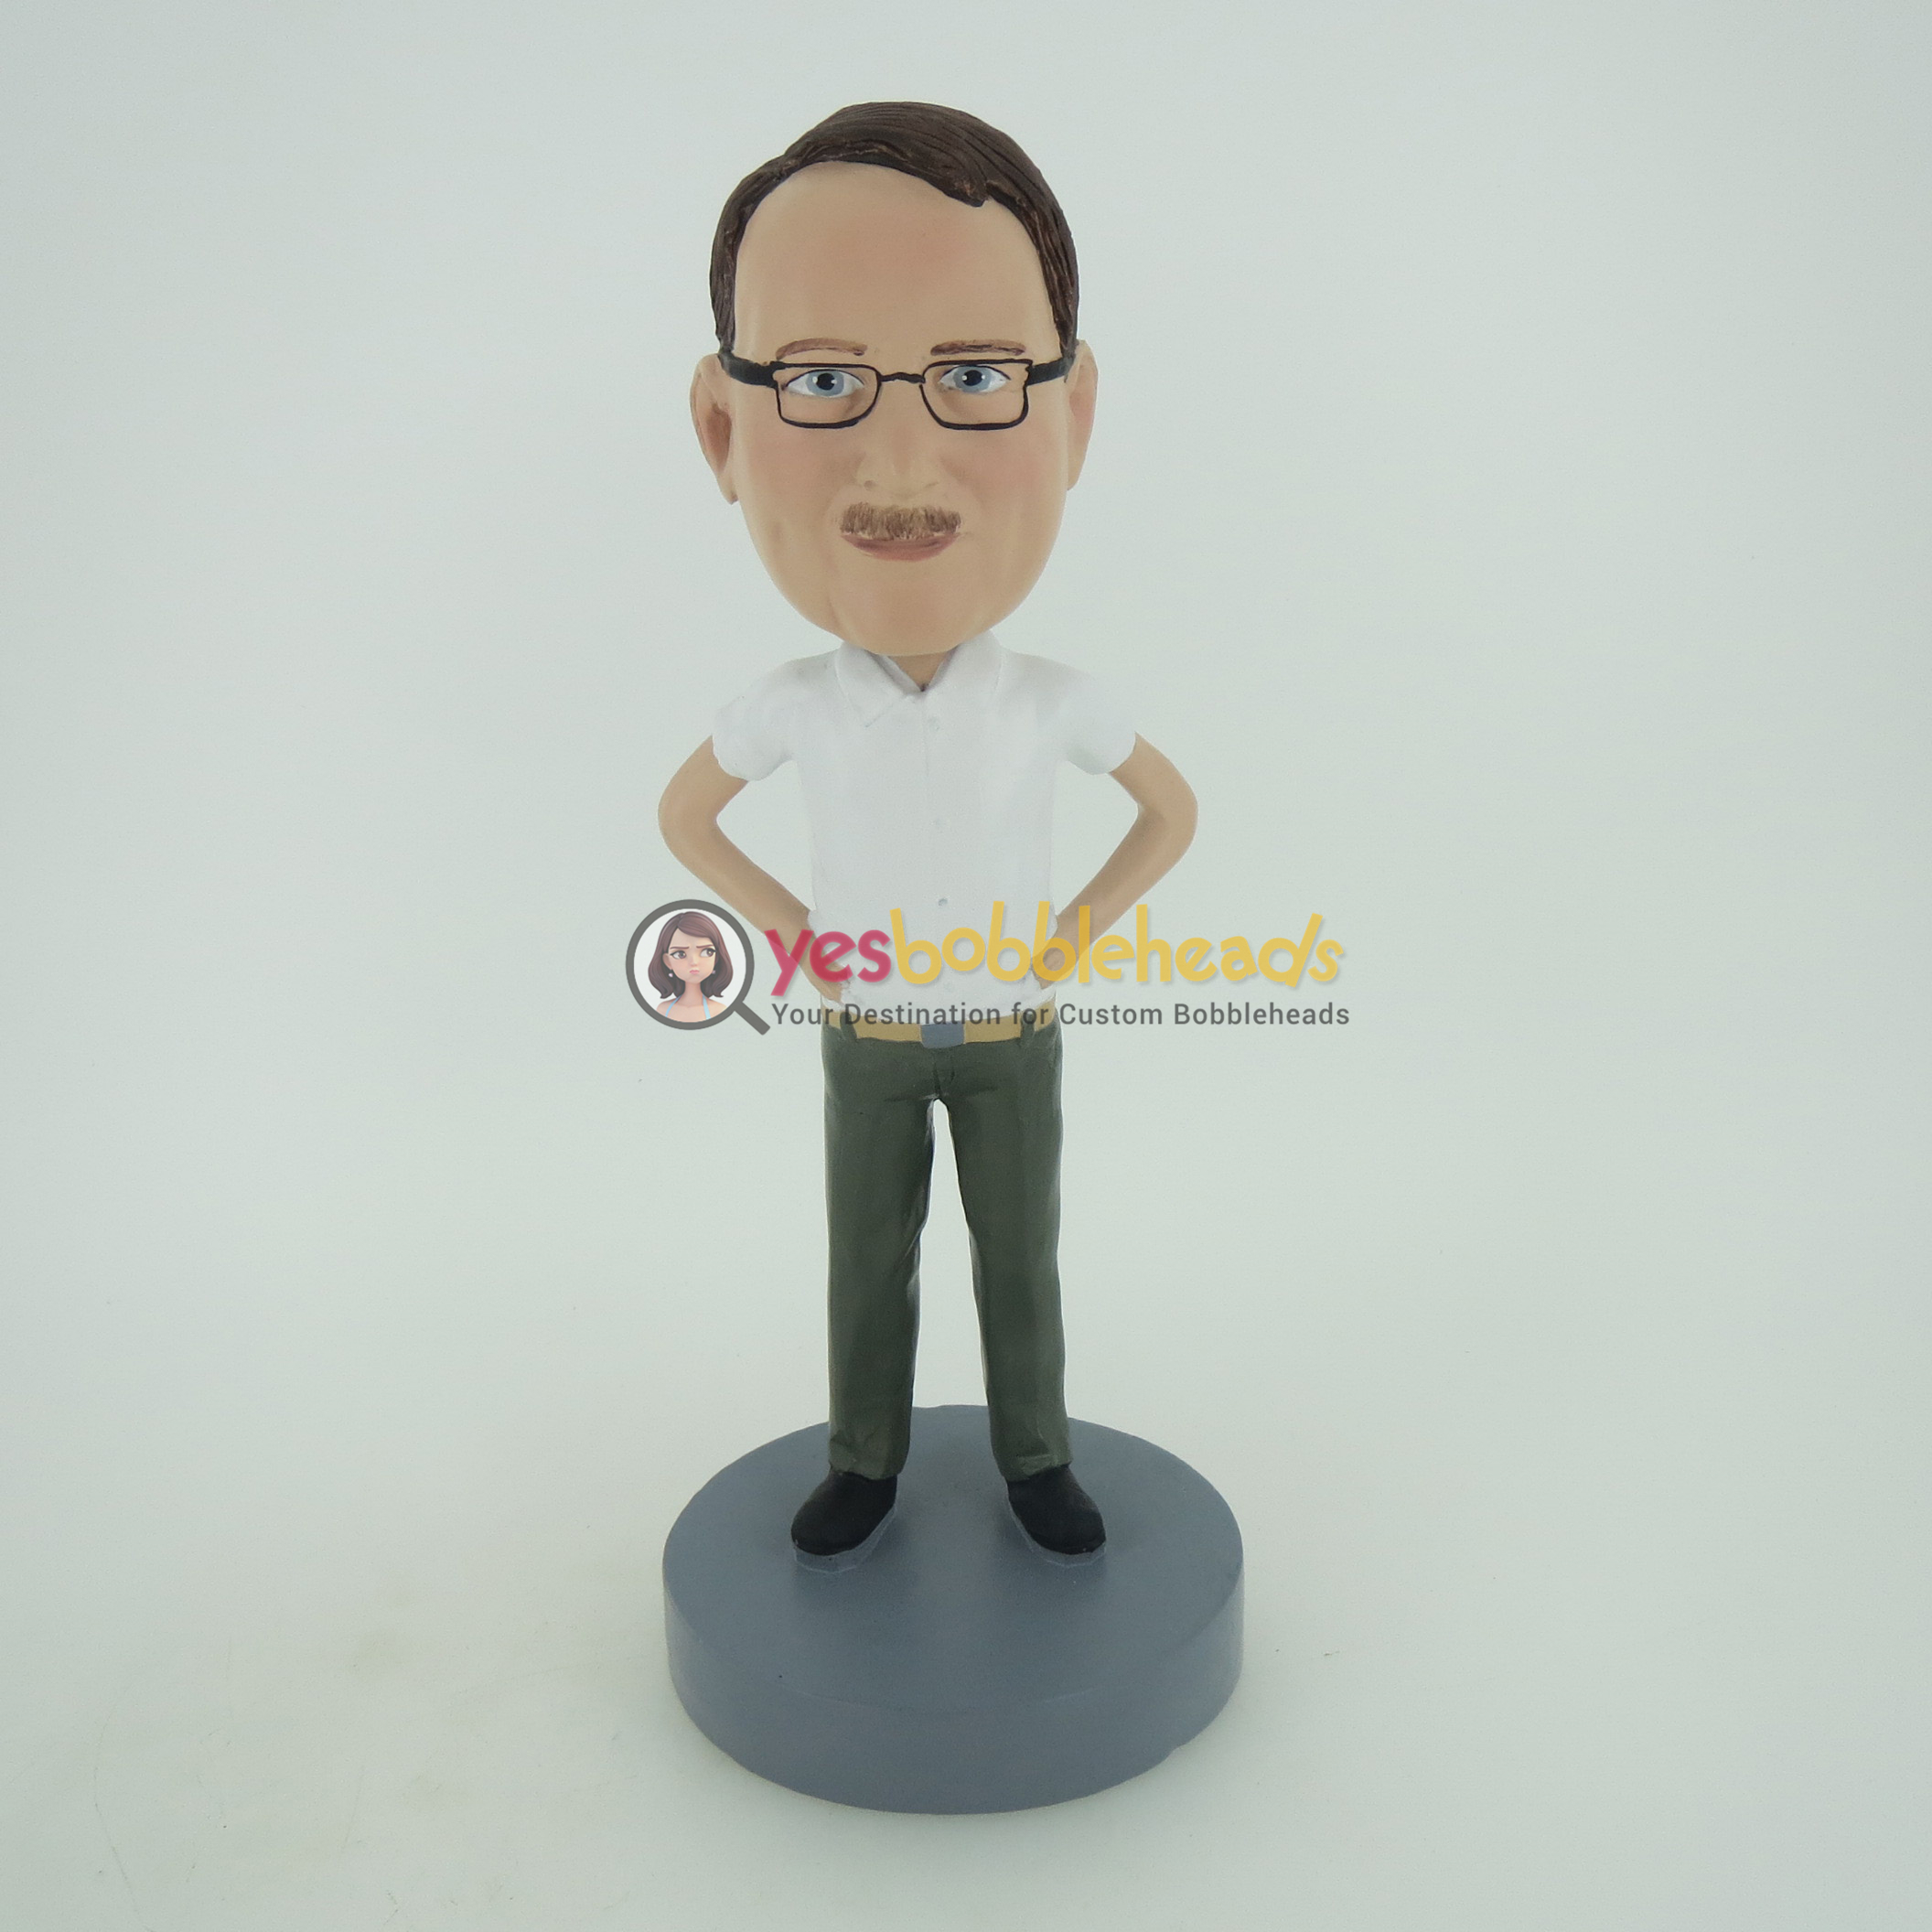 Picture of Custom Bobblehead Doll: Casual Man With Arms Akimbo